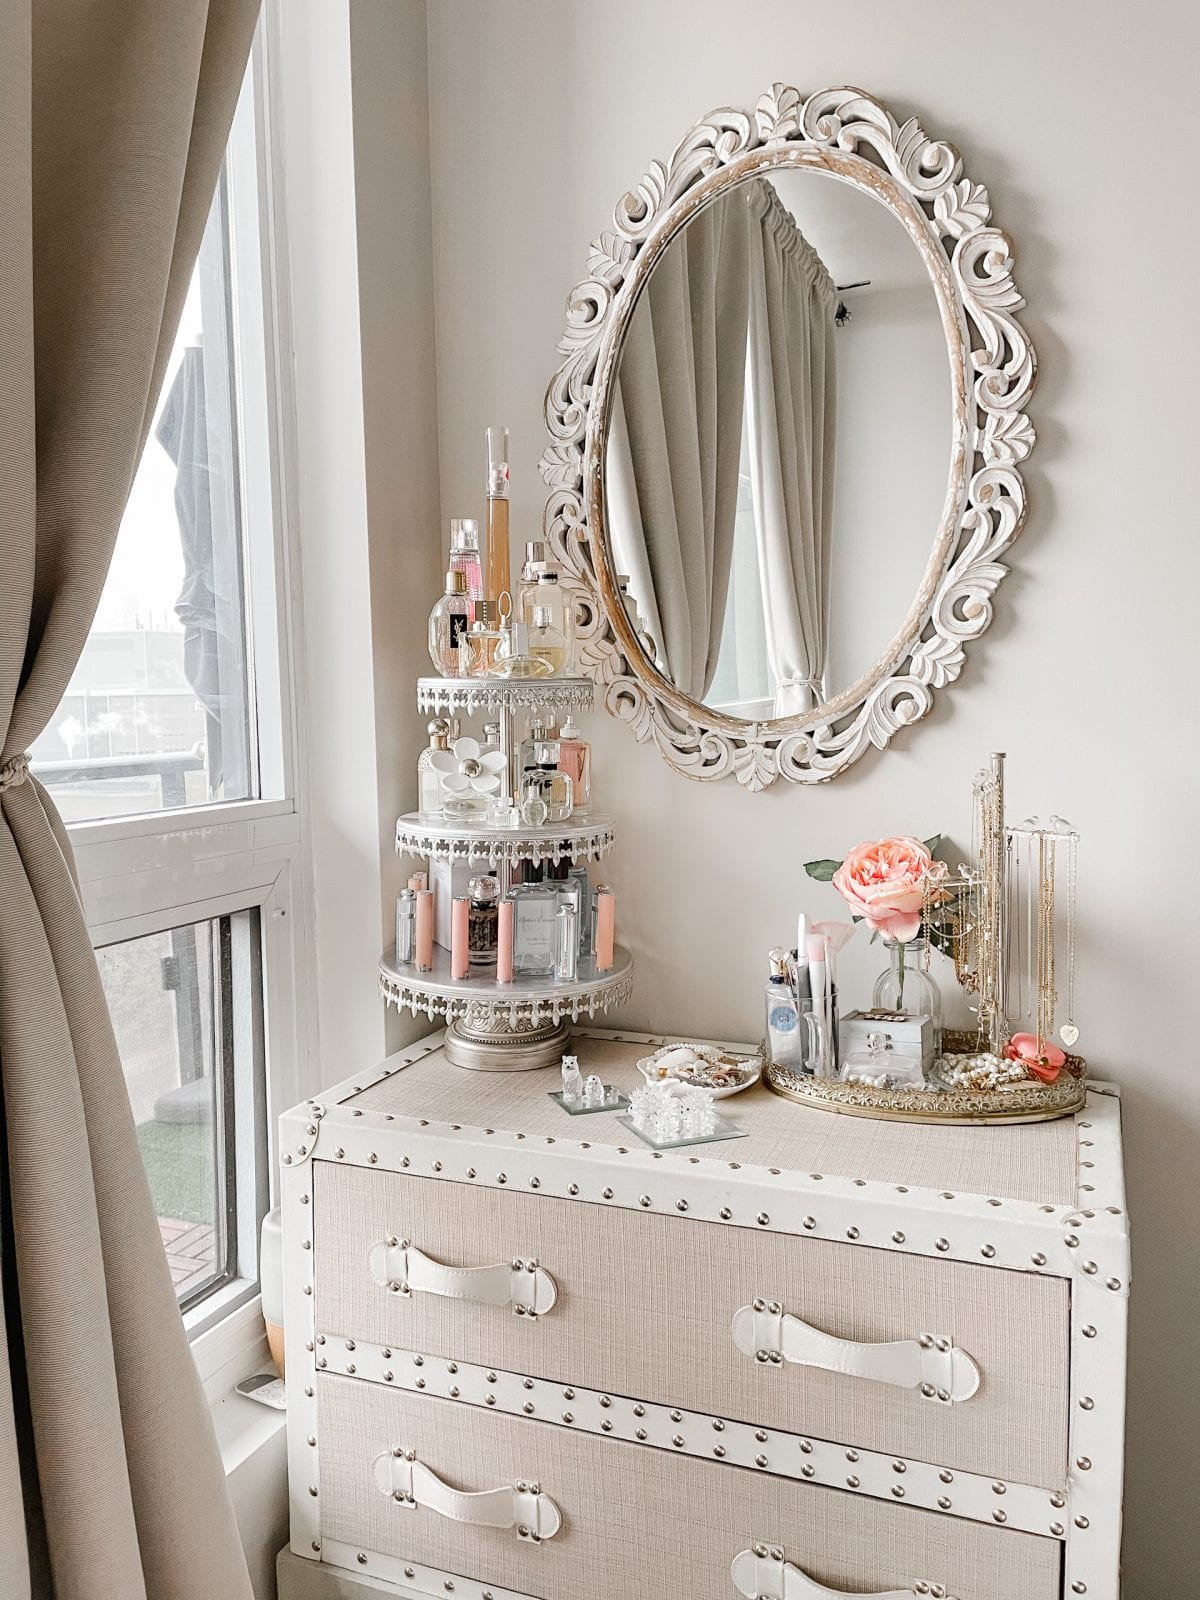 Bedroom vanity area with cake stand for perfume and makeup